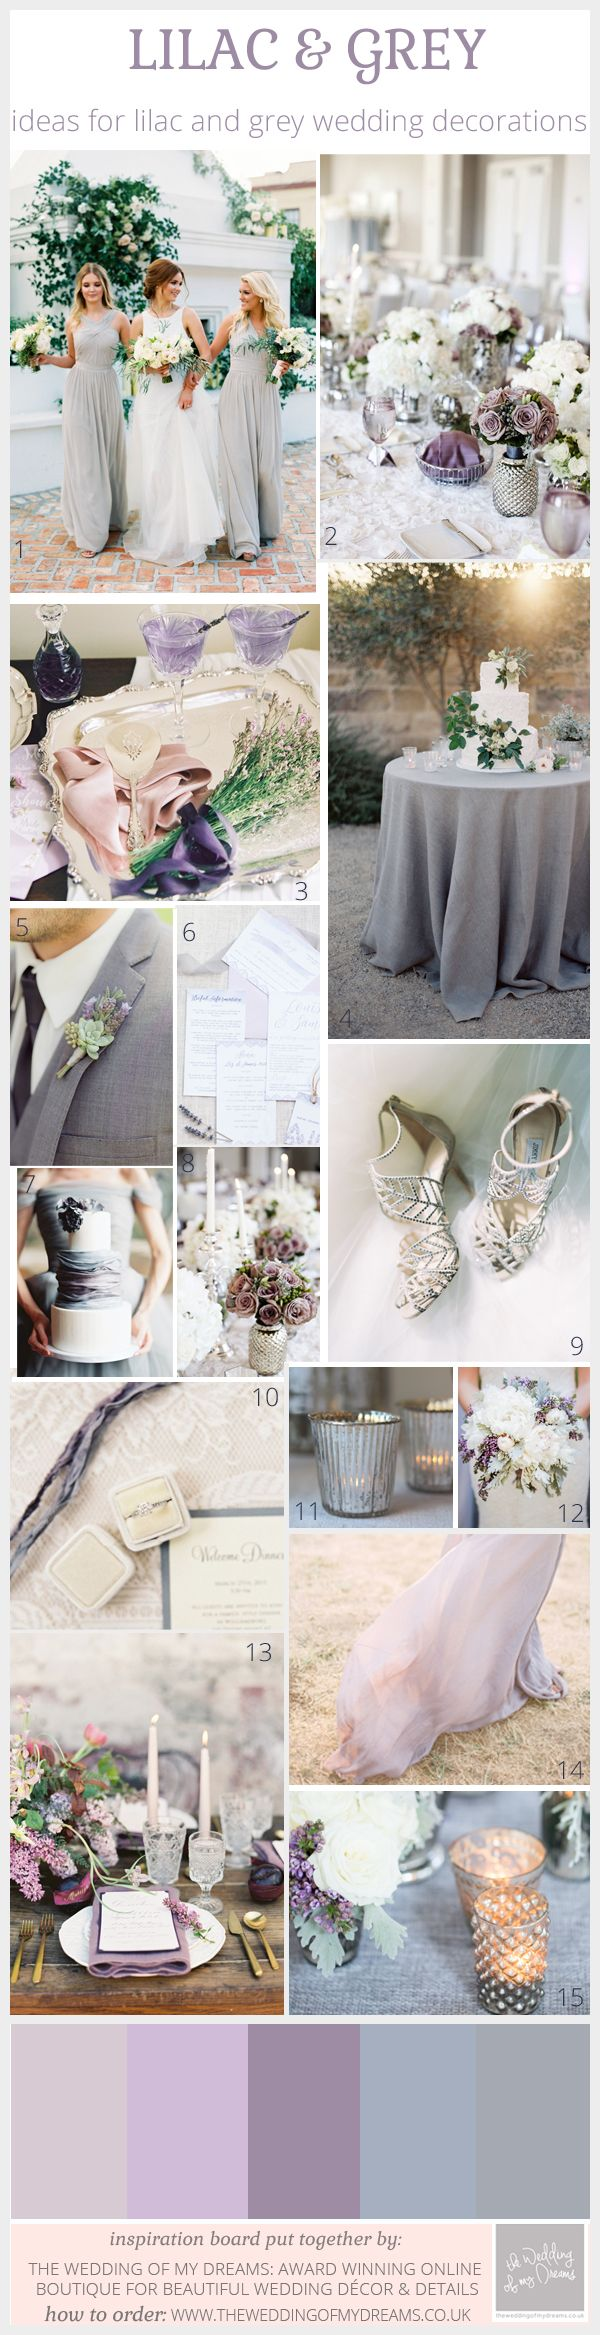 Chic Lilac And Grey Wedding Theme Inspiration | Pinterest | Grey ...